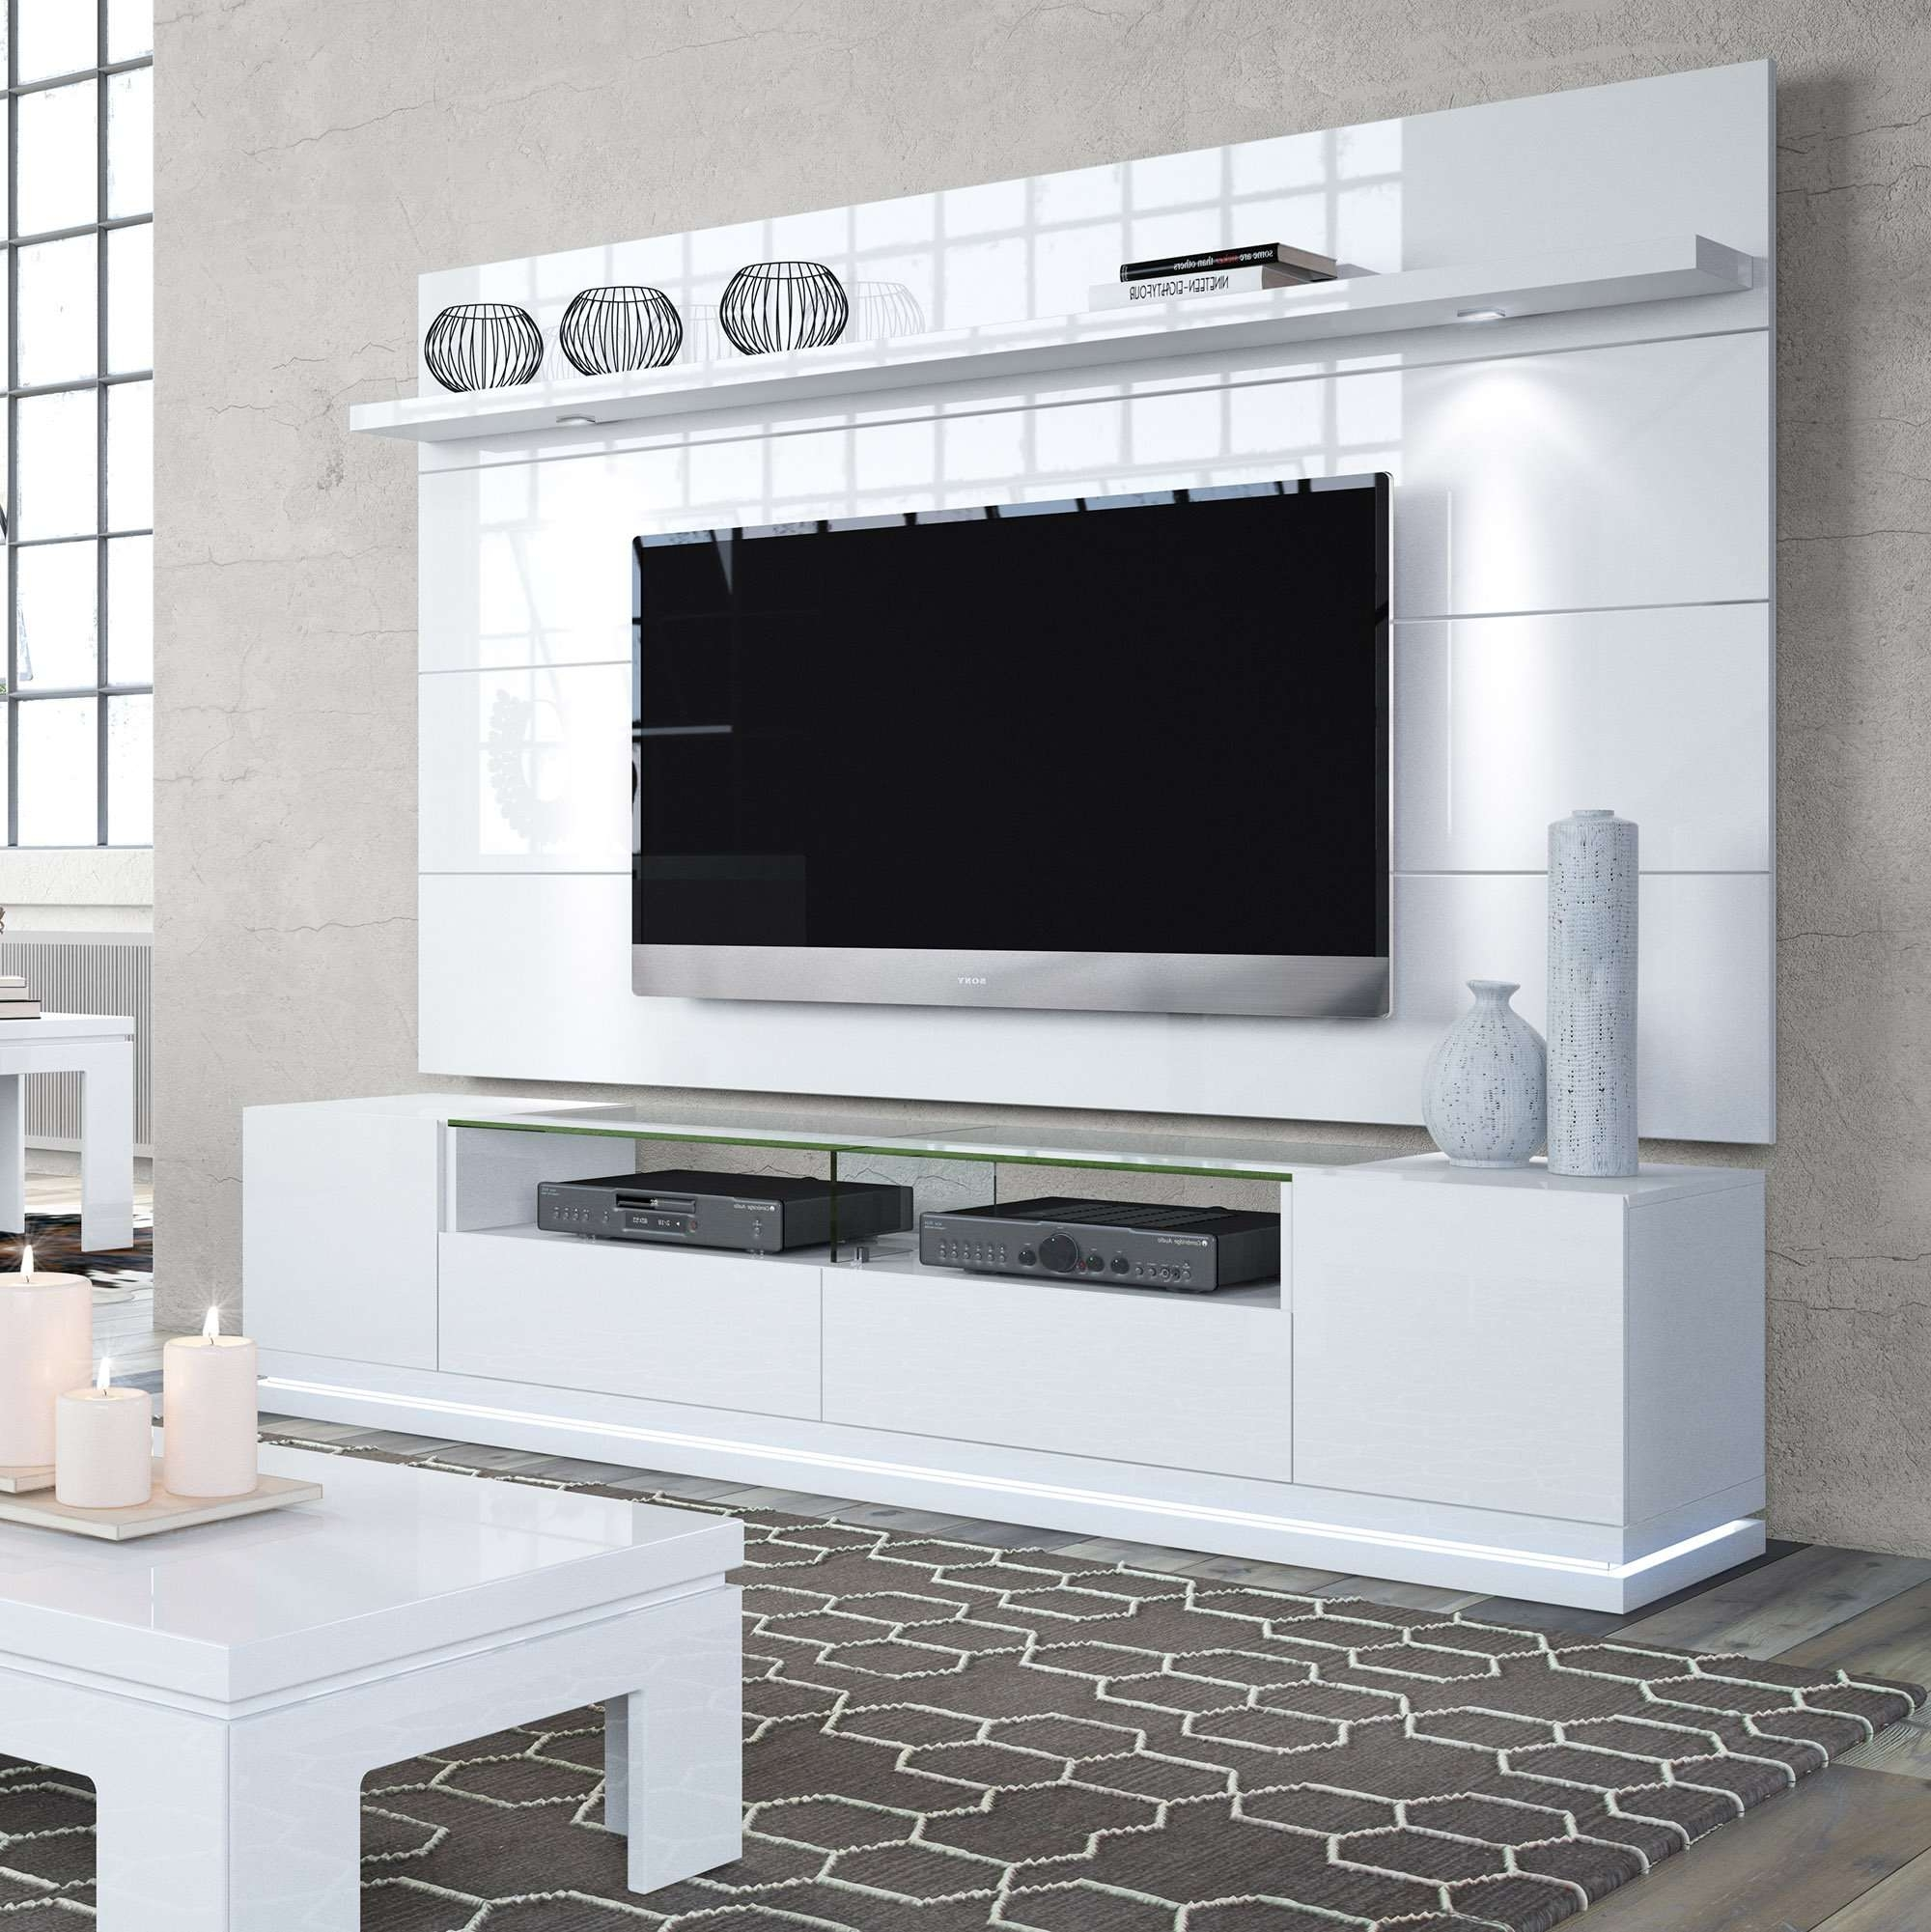 Showing Gallery of Gloss White Tv Stands (View 9 of 15 Photos)